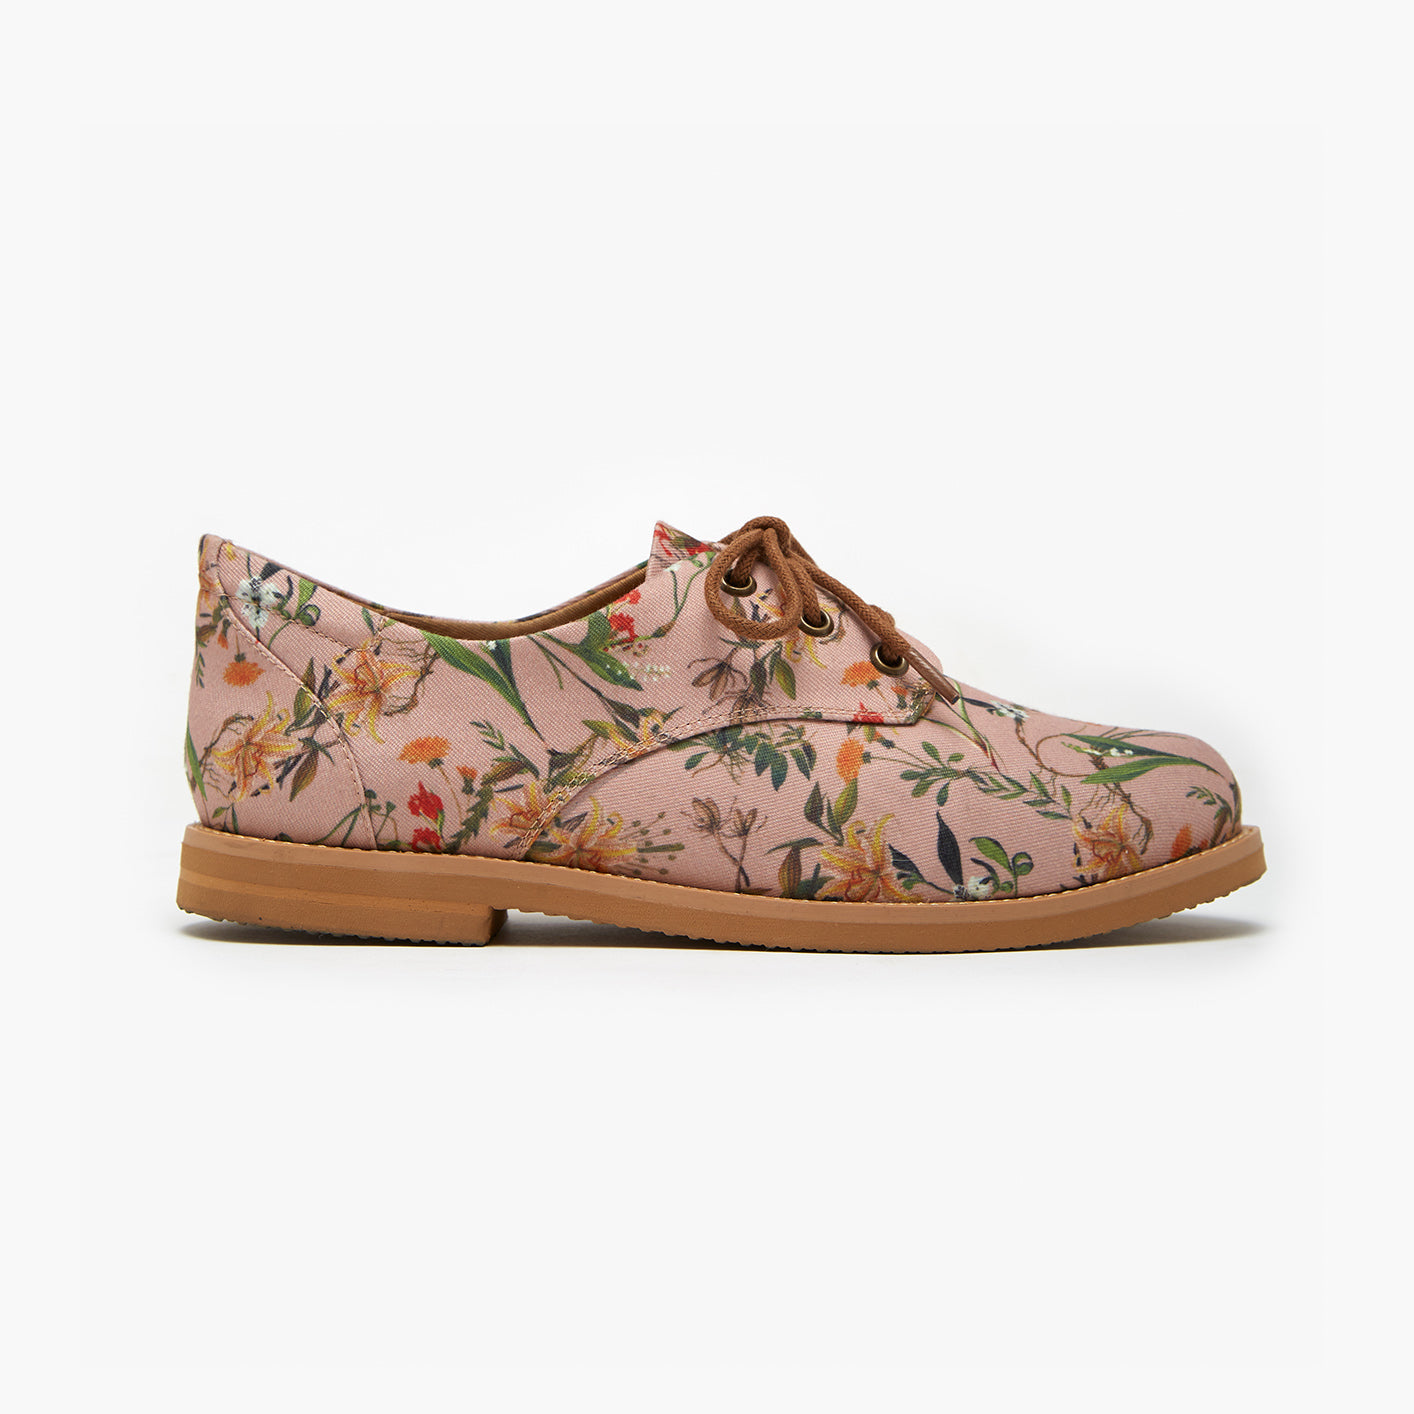 LILIUM OXFORD - Insecta Shoes Brasil